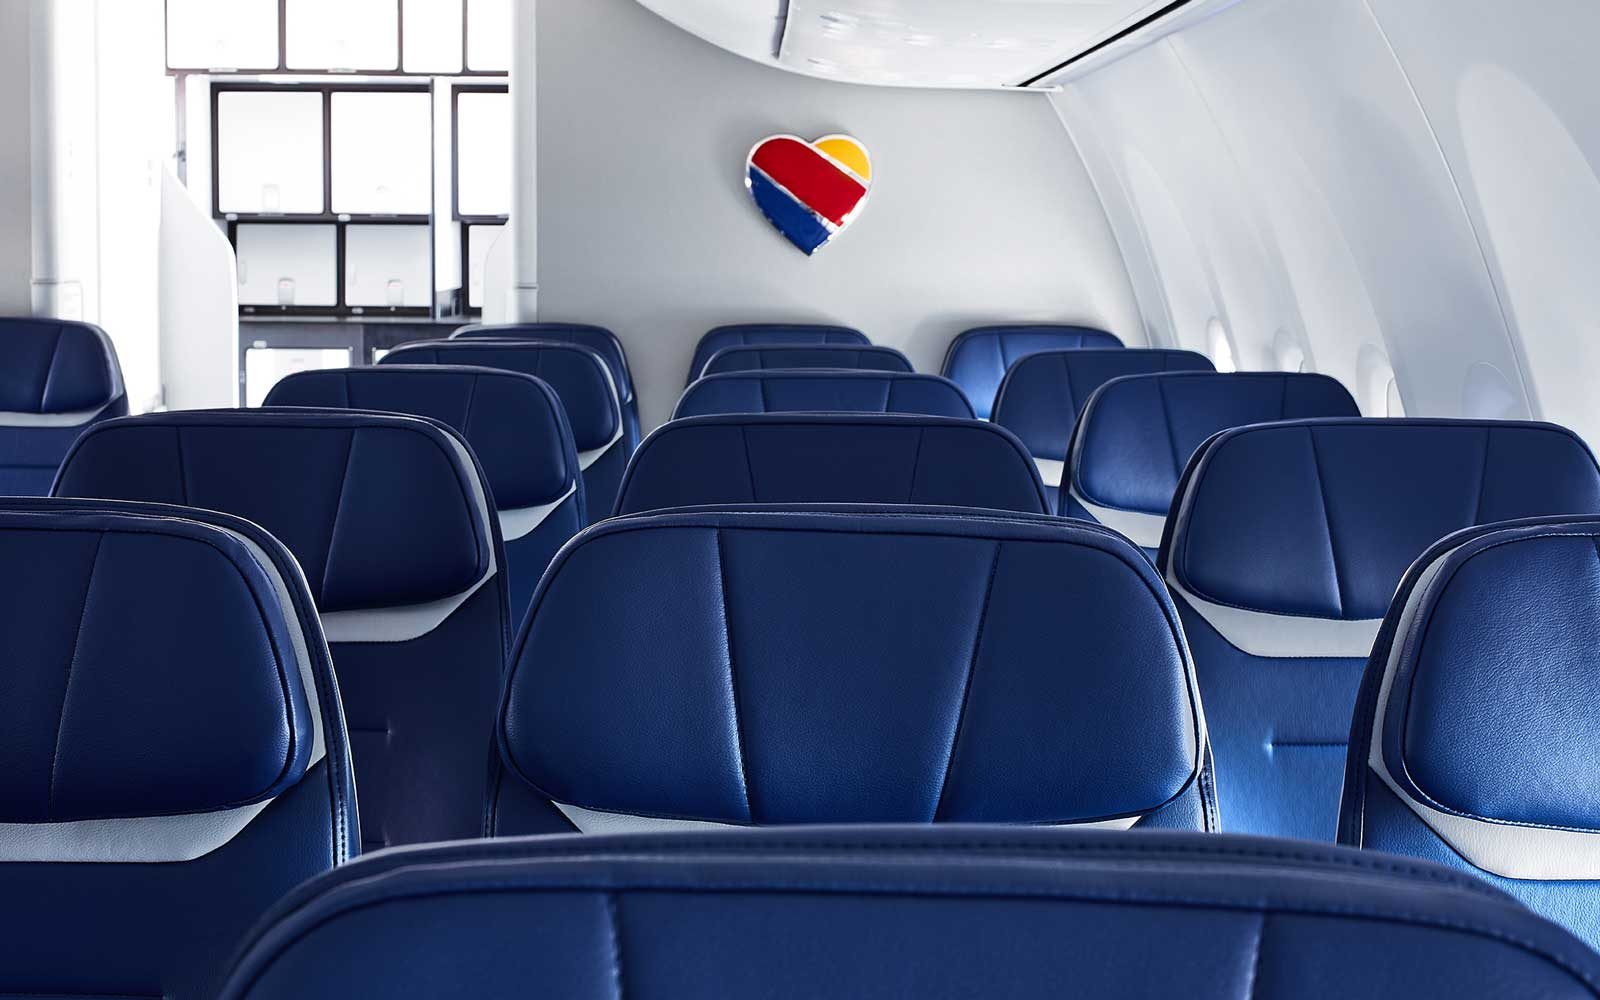 Interior detail of a Southwest Airlines plane cabin